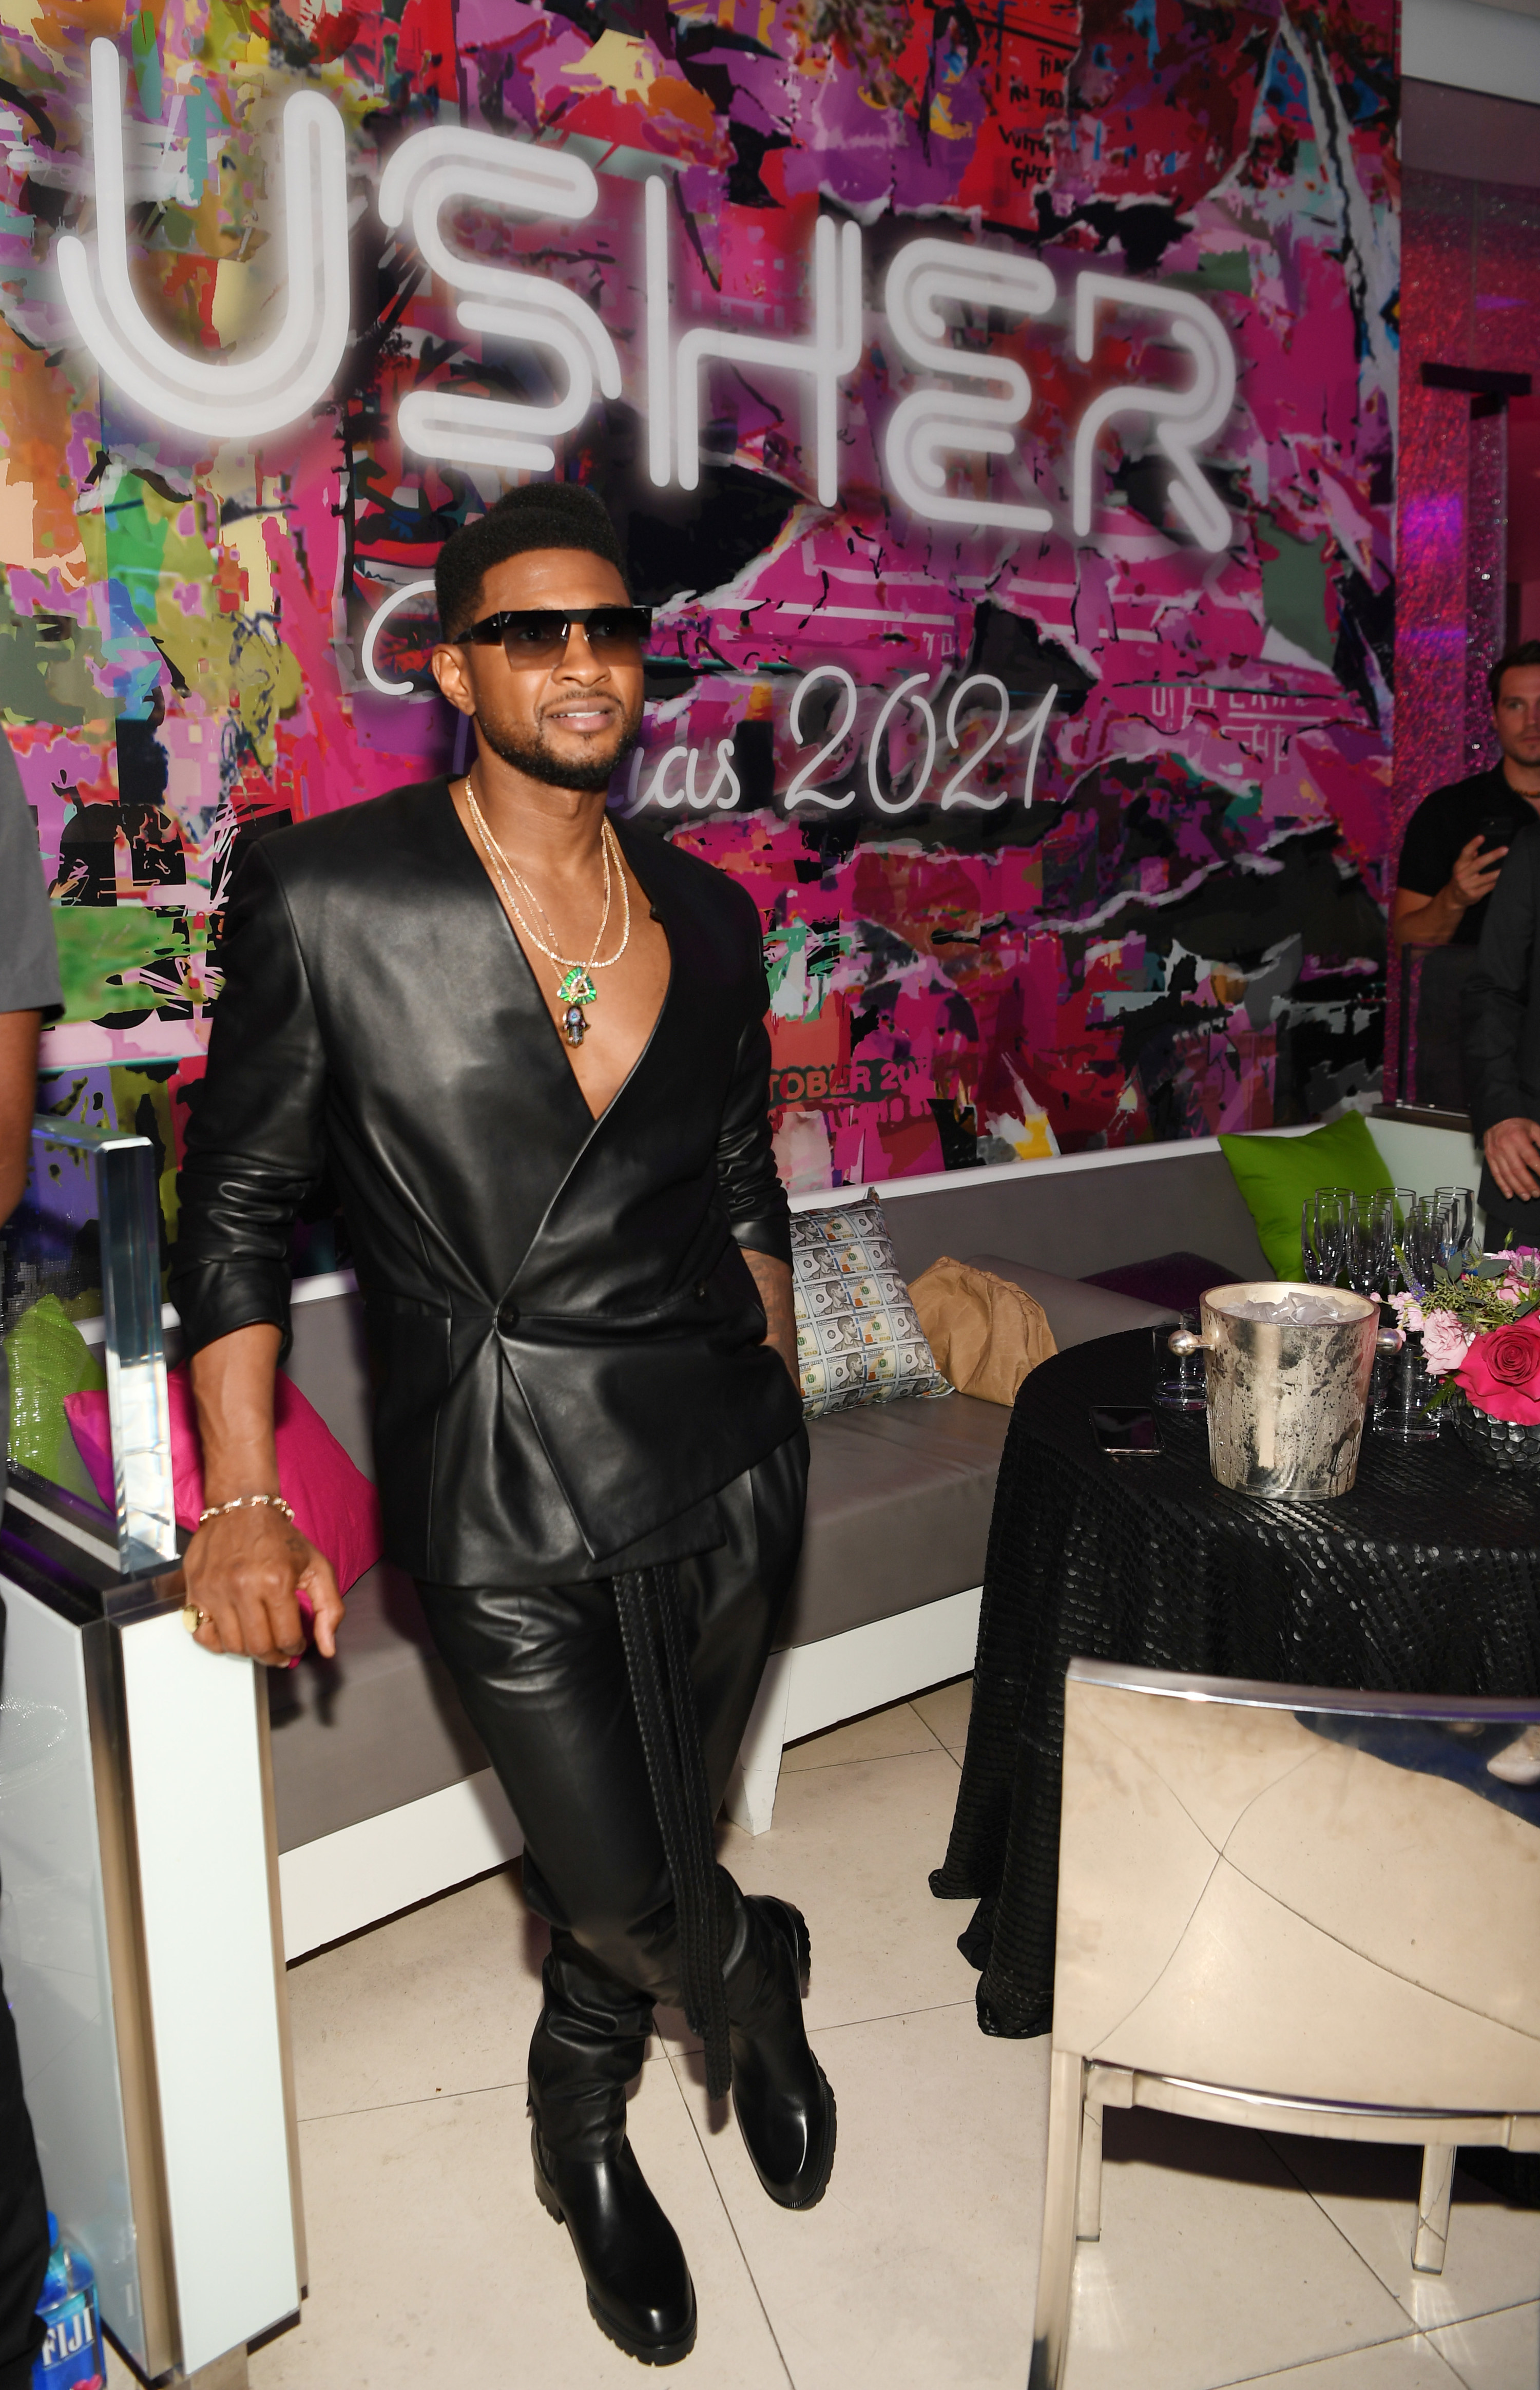 Usher wears a leather jacket with no shirt underneath, leather pants, boots, and sunglasses.